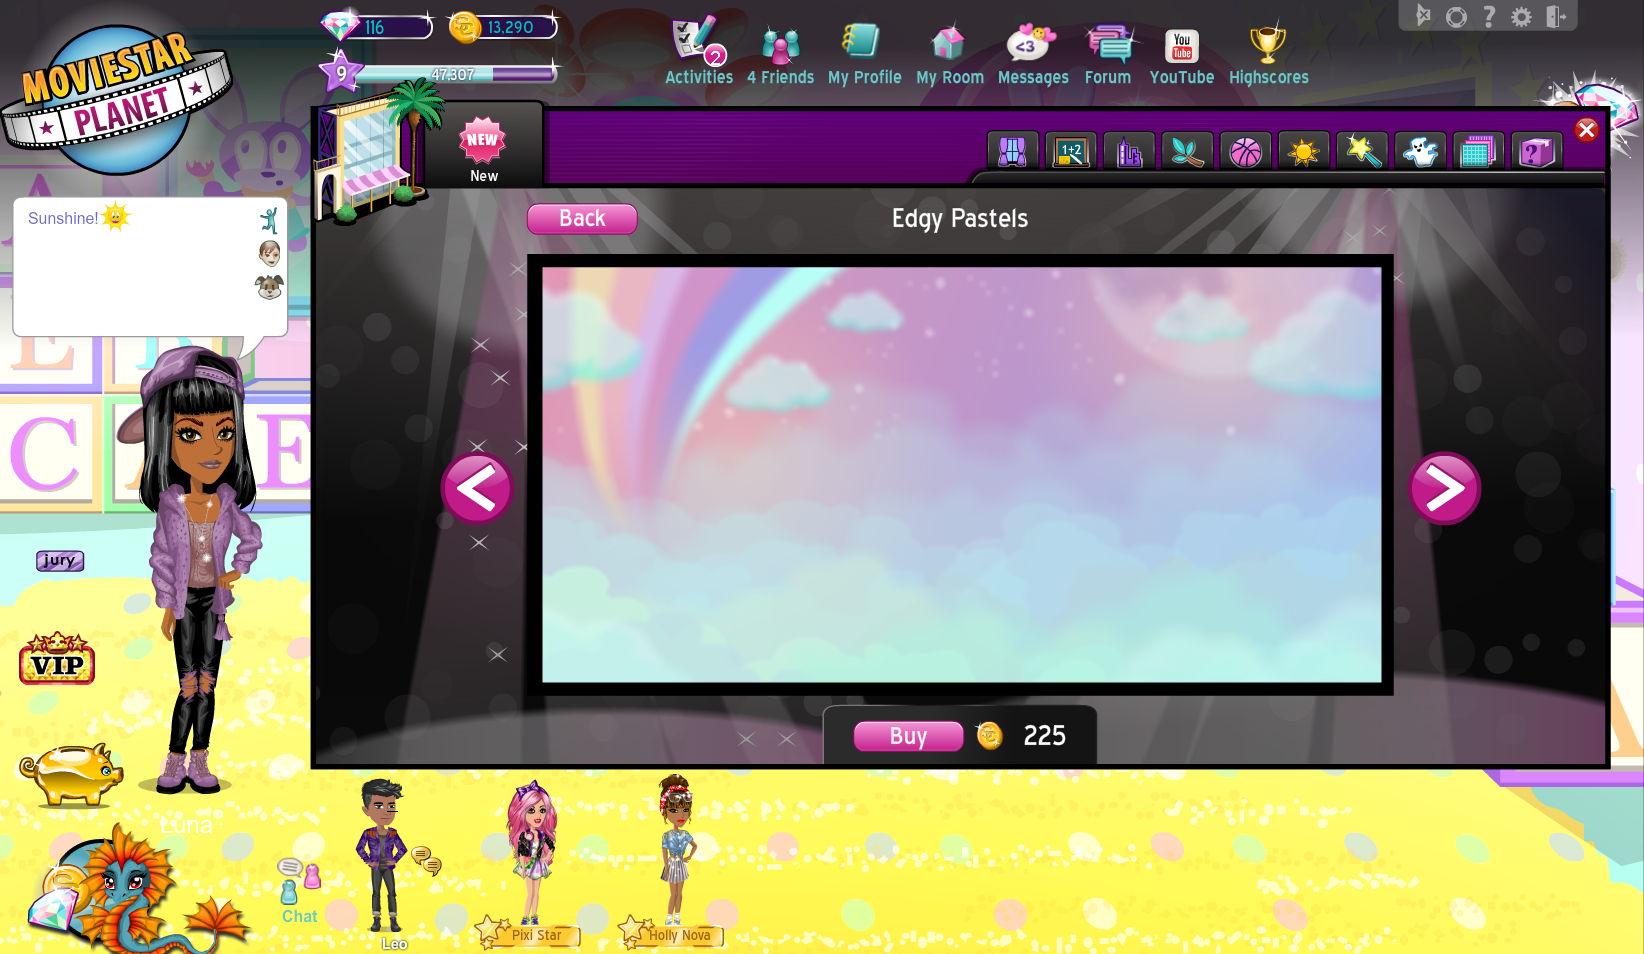 Moviestarplanet Background Posted By Christopher Mercado